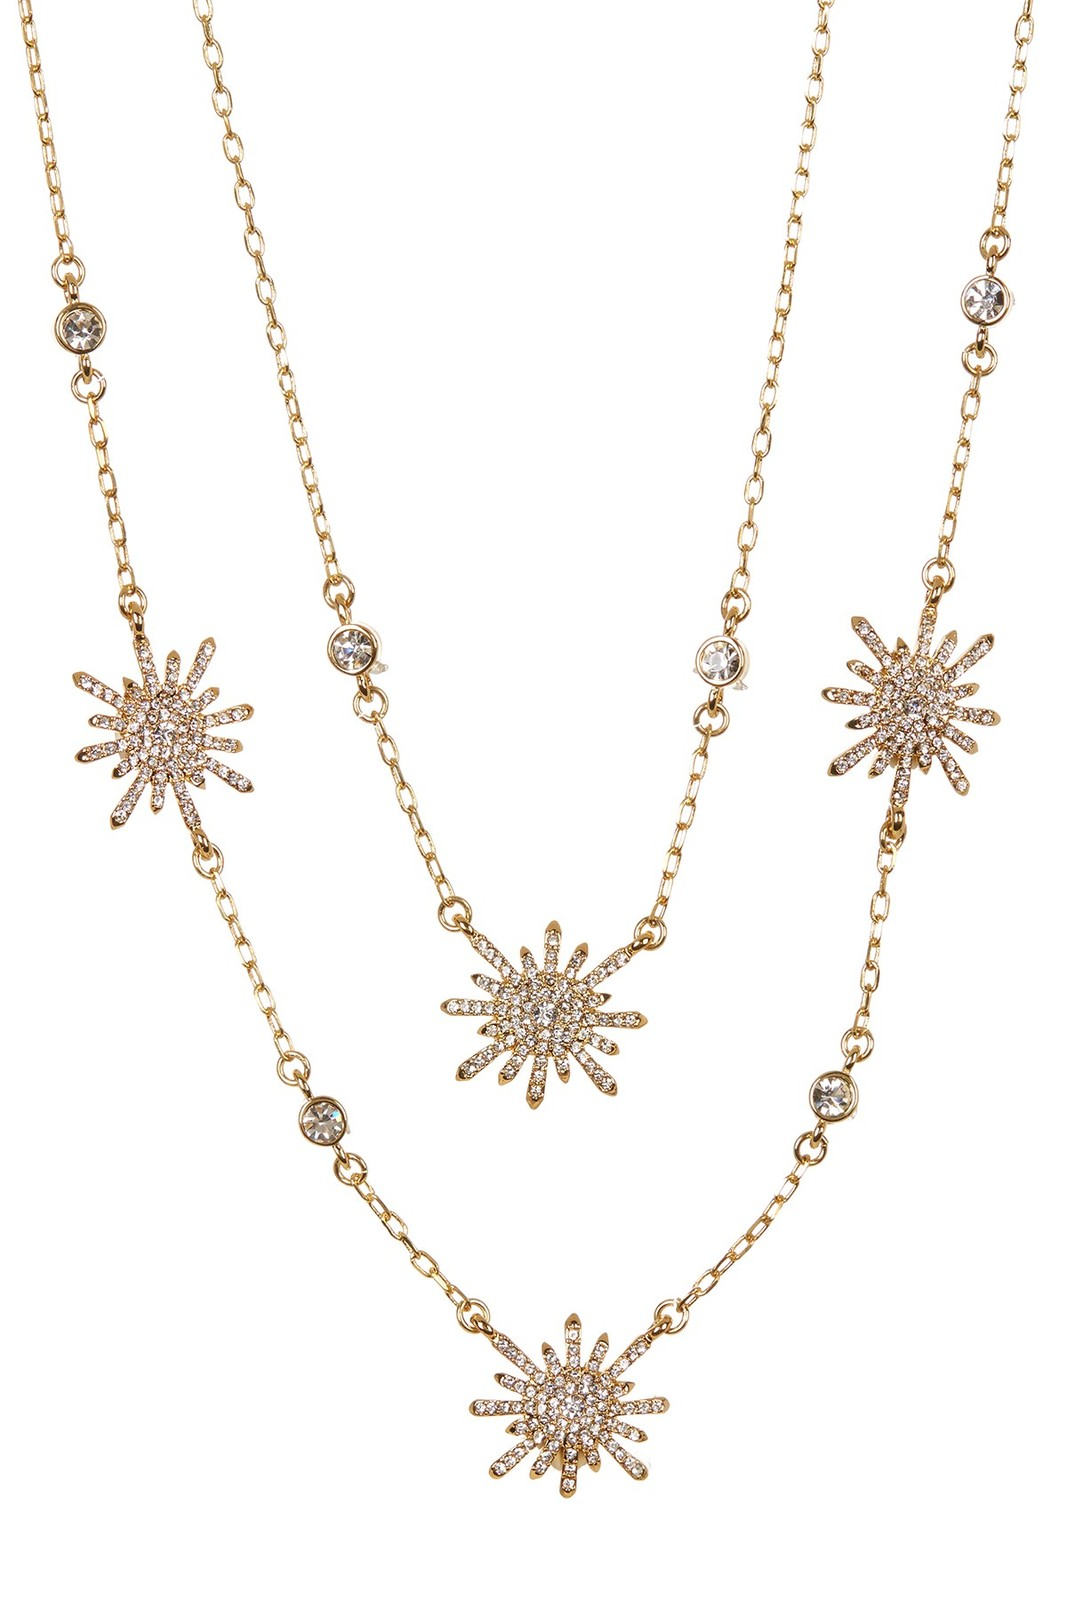 Primary image for Vince Camuto™ Goldtone Double Layer Pave Sunburst Necklace